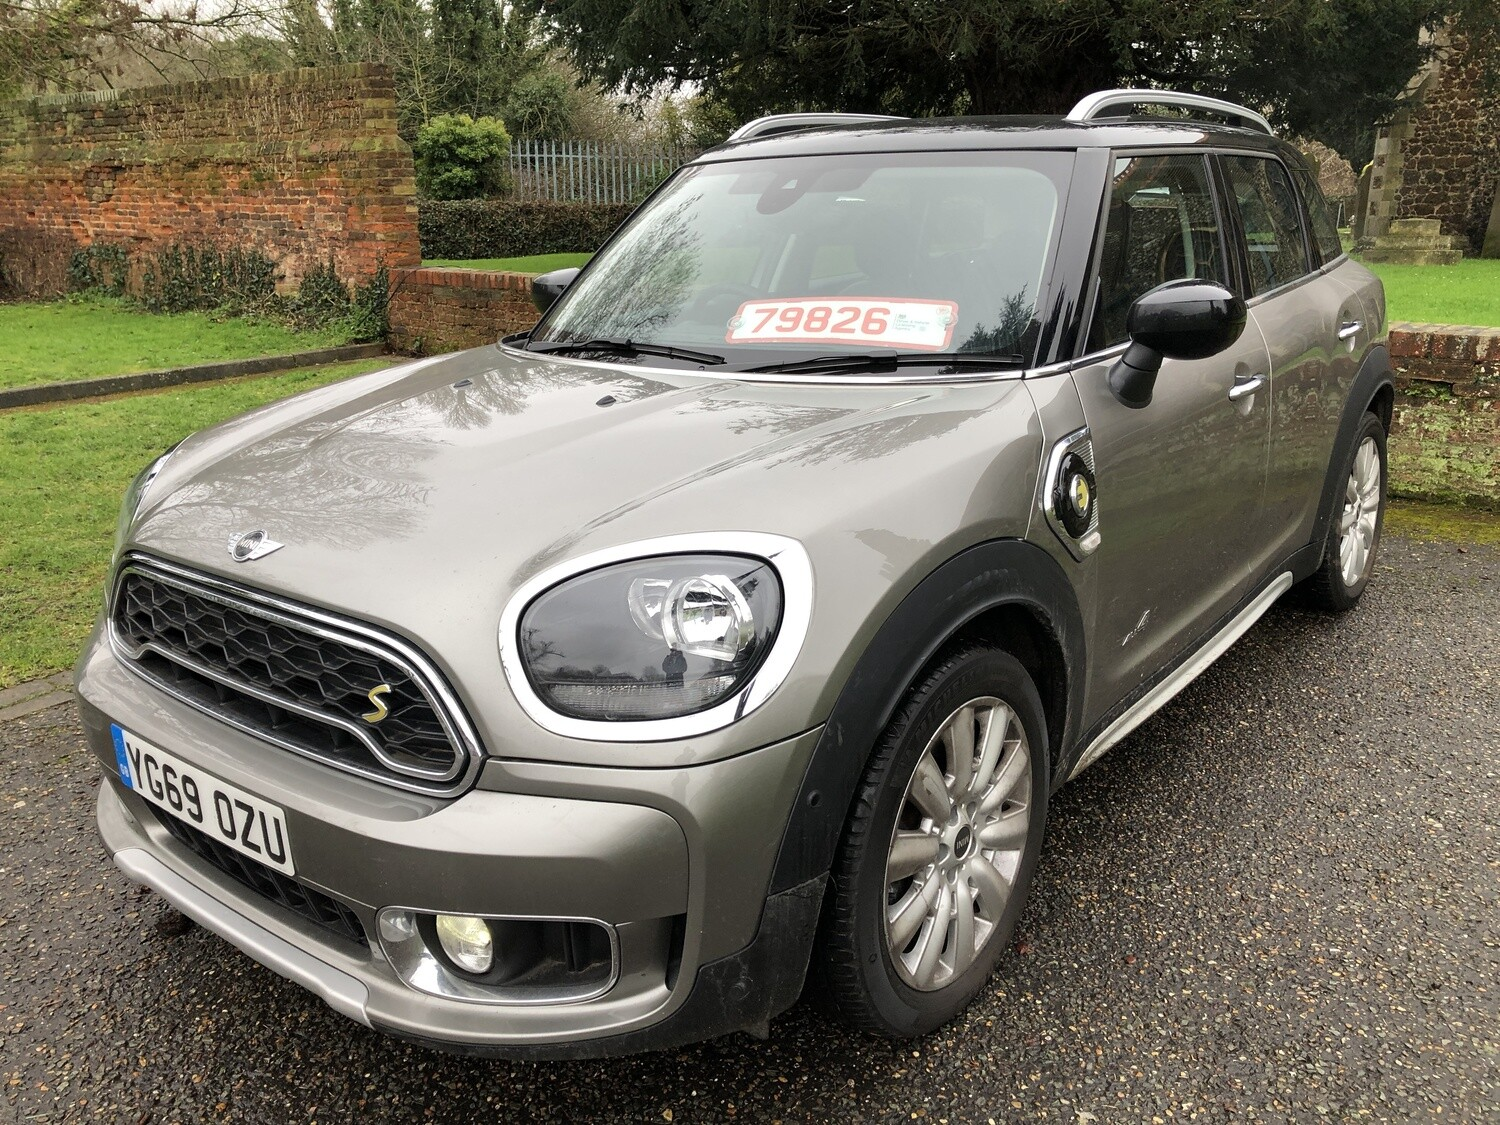 MINI Countryman | YG69OZU SUV (2019 - 2020) 1.5E PHEV 10kWh 8.8kWh Cooper SE Exclusive Auto ALL4 (s/s) 5dr  PLUG IN HYBRID ELECTRIC MINI Asking price  CAT S Repaired hence bargain £20994